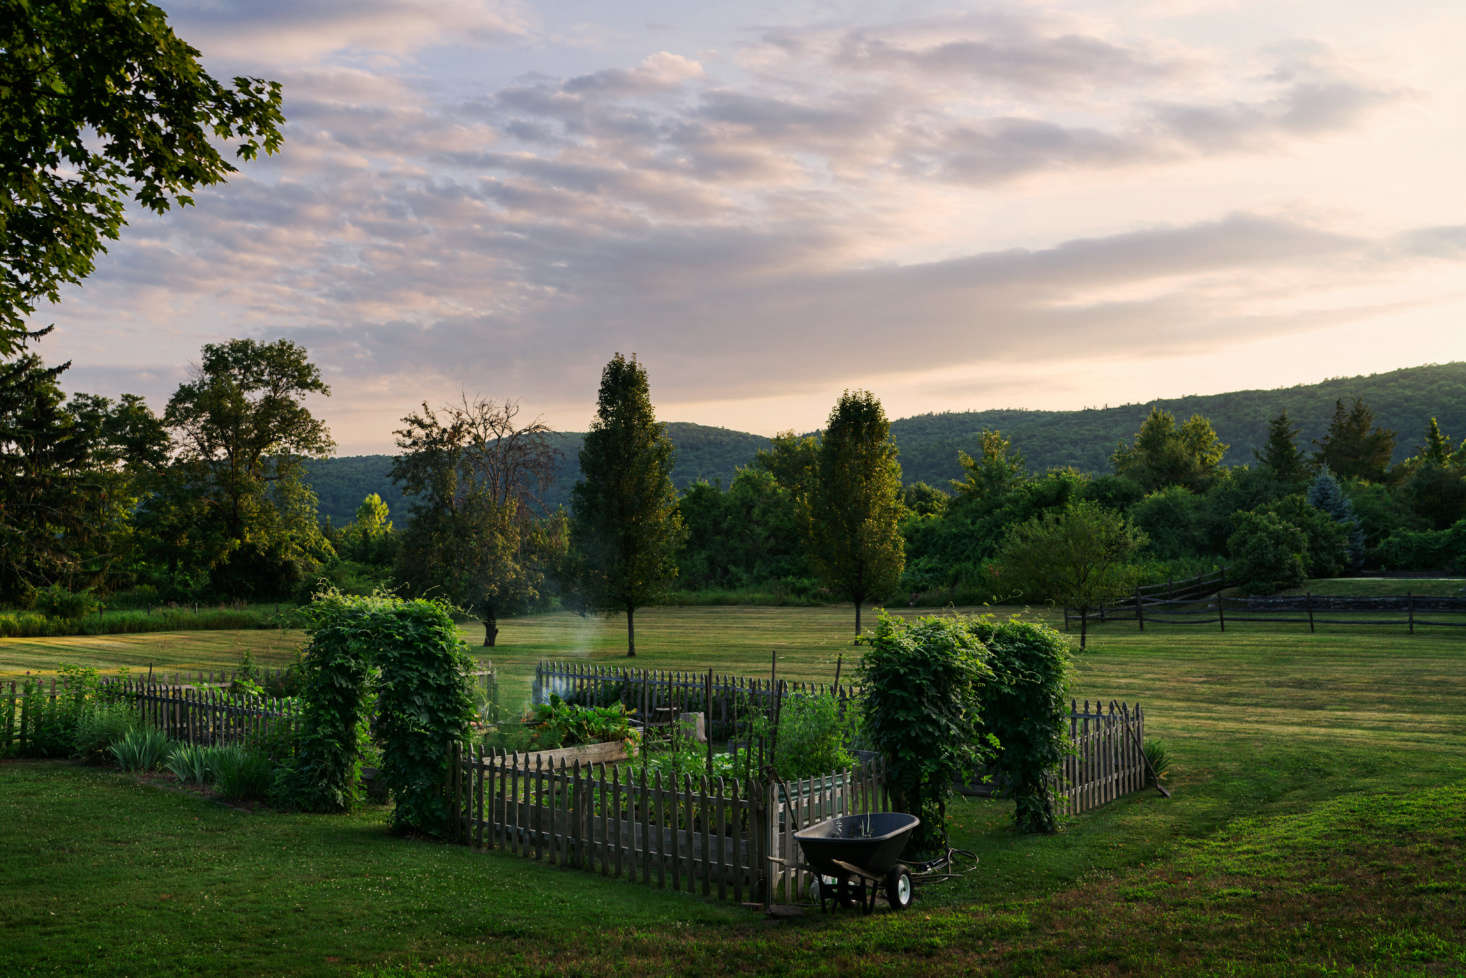 Two ivy-covered trellises lead to the family&#8